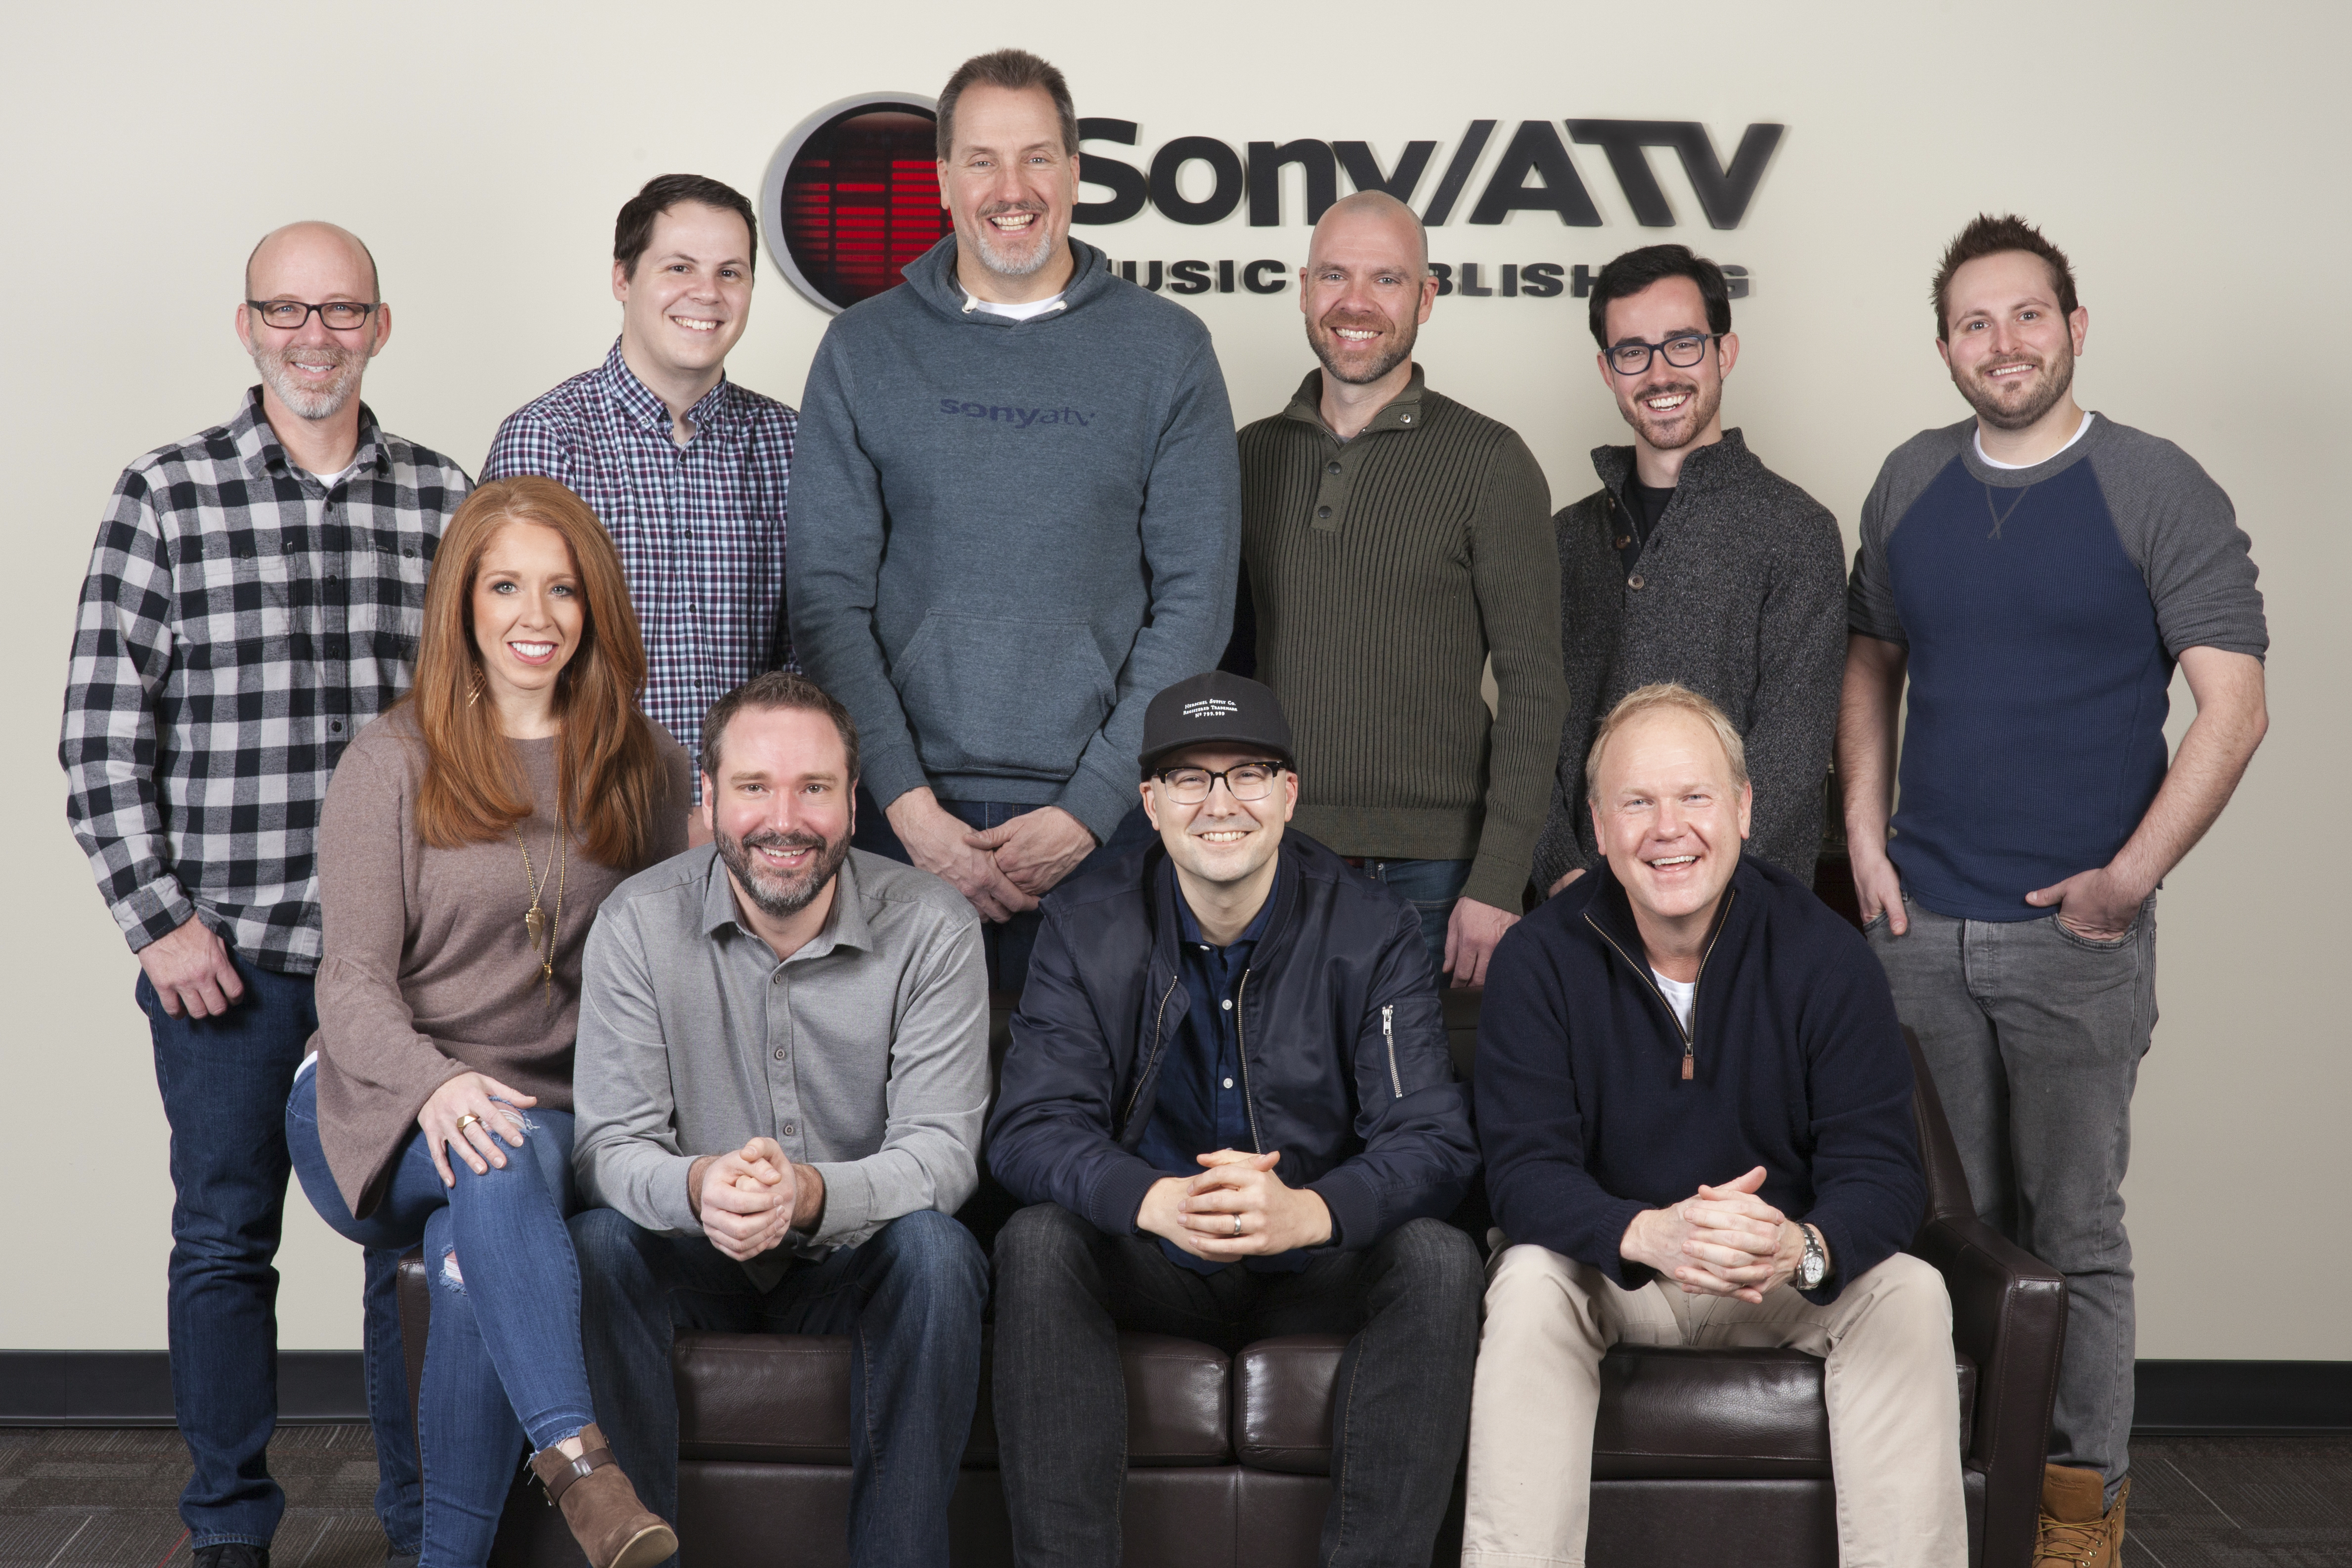 Luke Laird Signs Publishing Deal With Sony/ATV Music